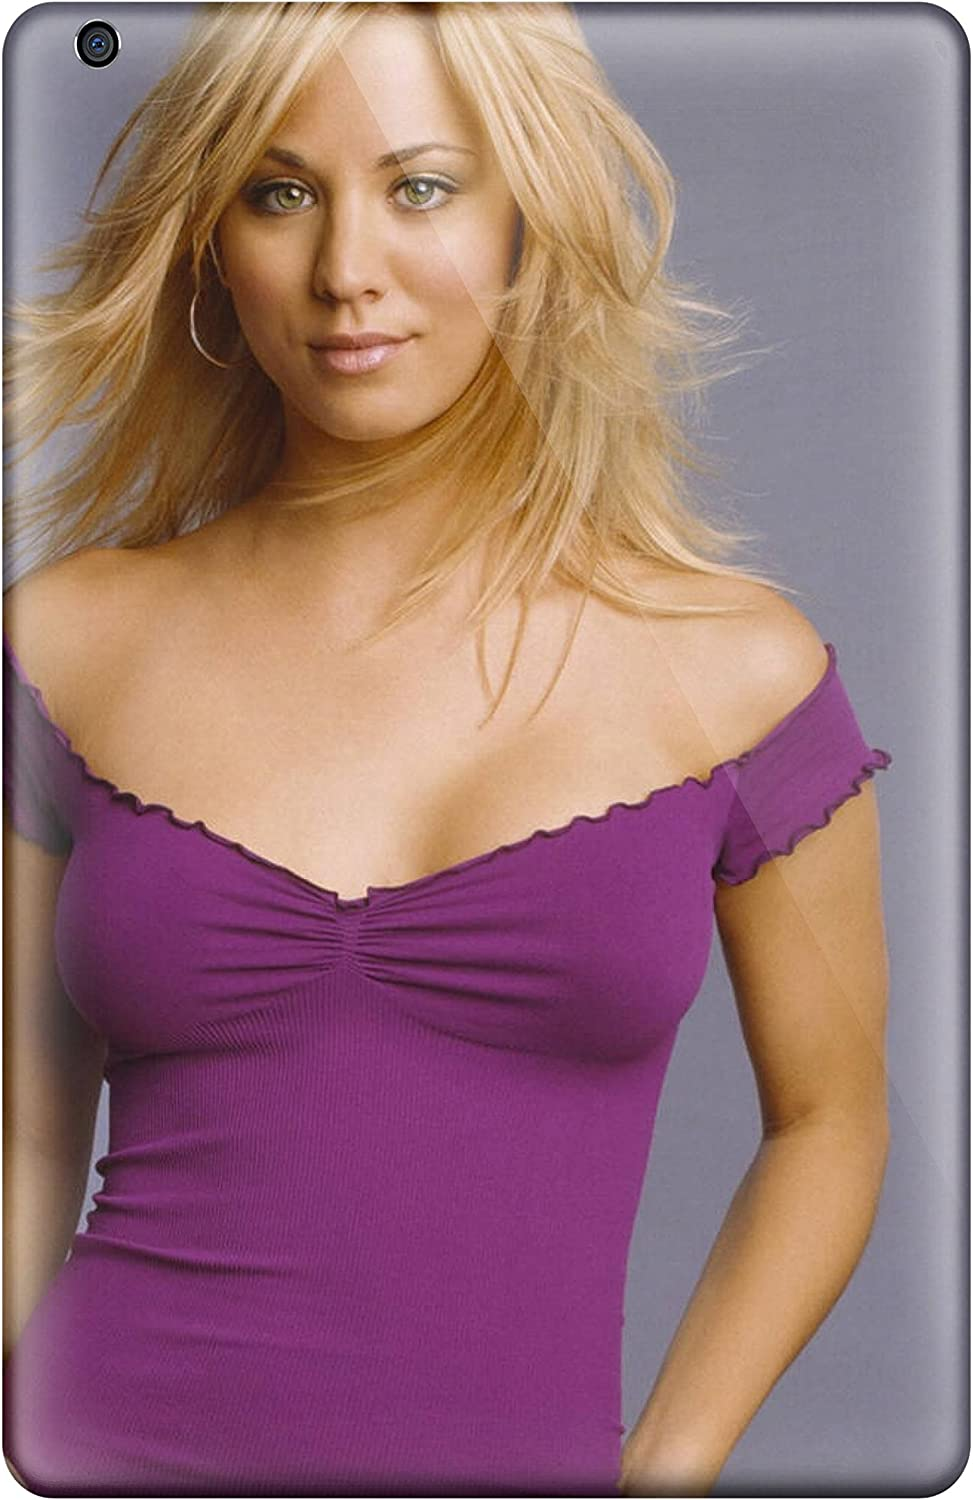 Pamela Sarich's Shop Quality Case Cover With Prison Break Actress Kaley  Cuoco Nice Appearance Compatible With Ipad Mini 2: Amazon.ca: Cell Phones &  Accessories